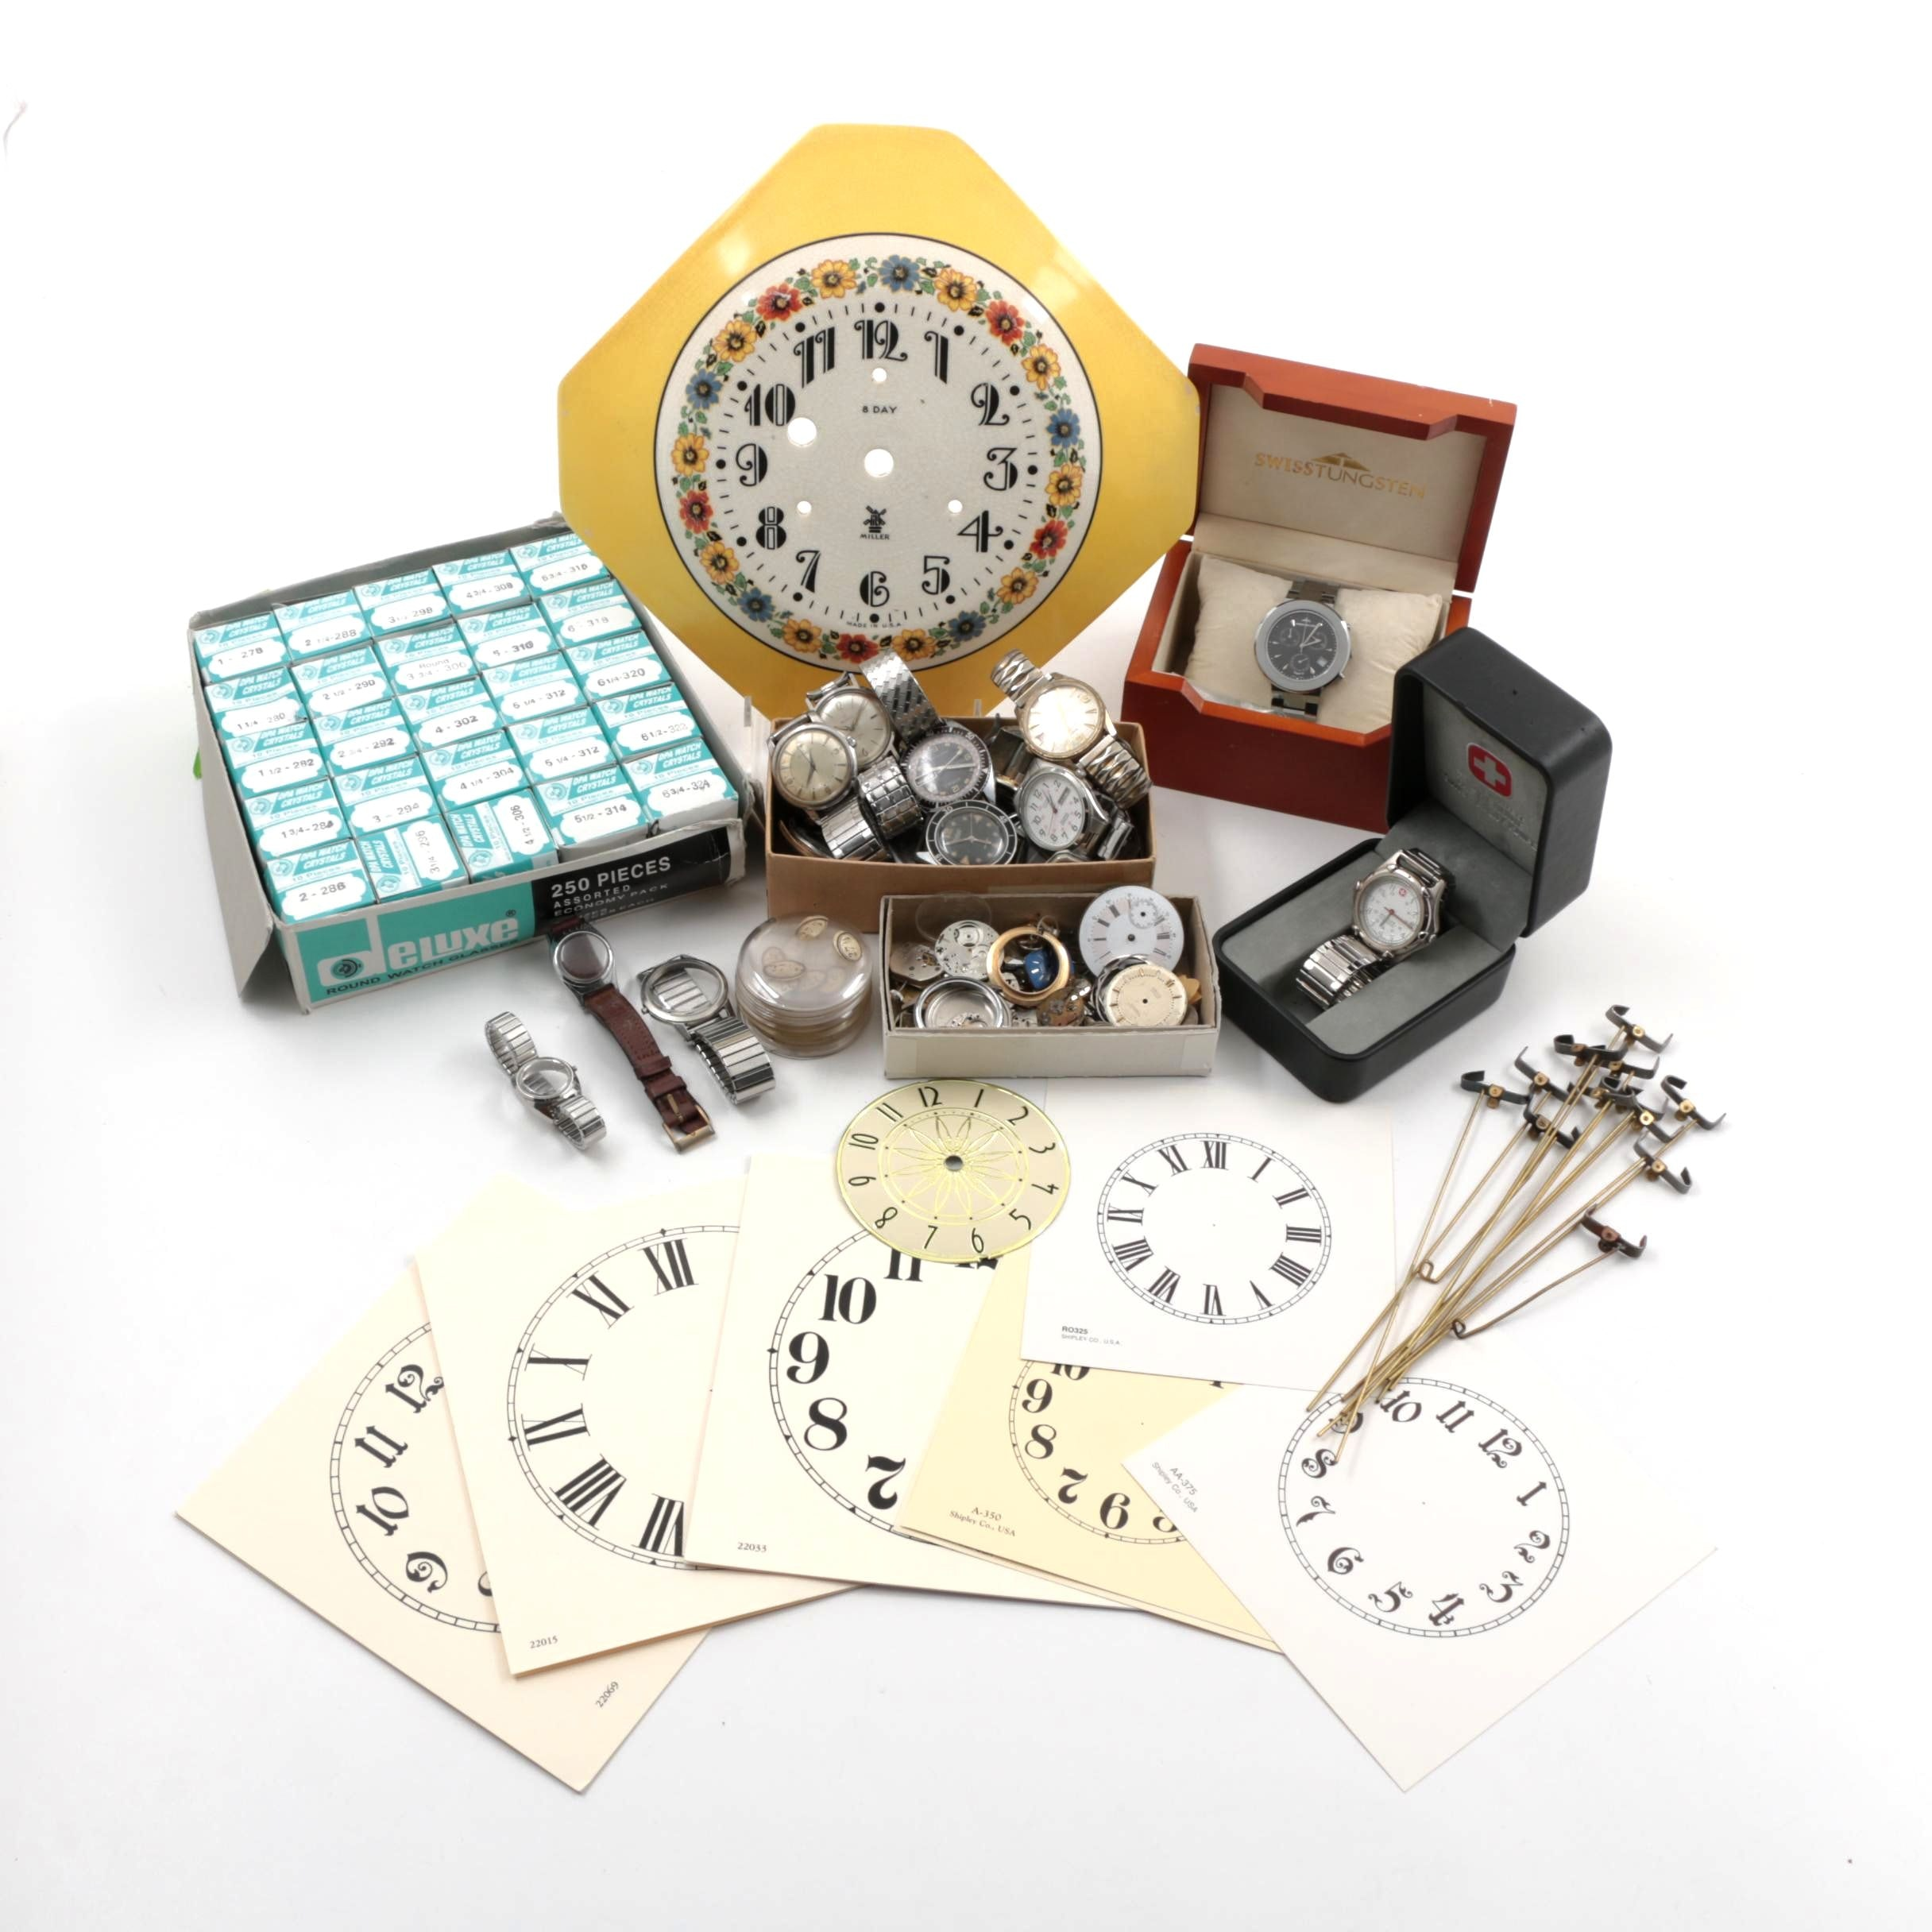 Collection of Assorted Watch and Clock Parts Including Dials and Crystals